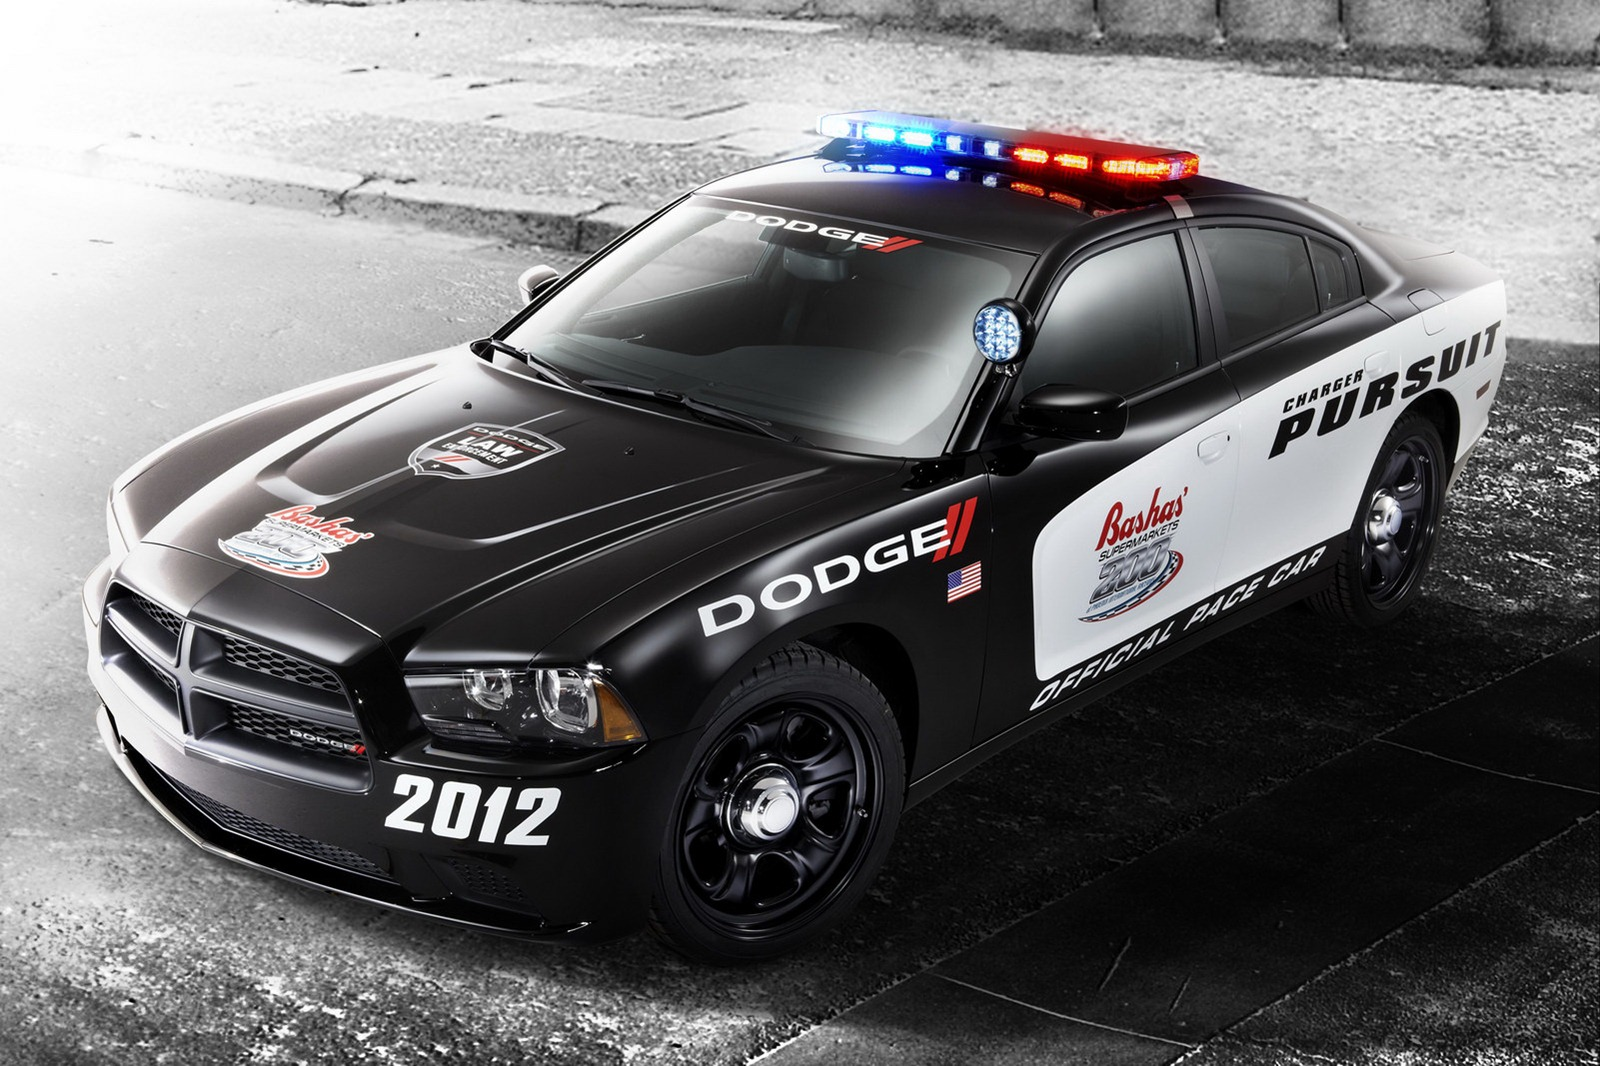 2012 dodge charger pursuit pace car review top speed. Black Bedroom Furniture Sets. Home Design Ideas